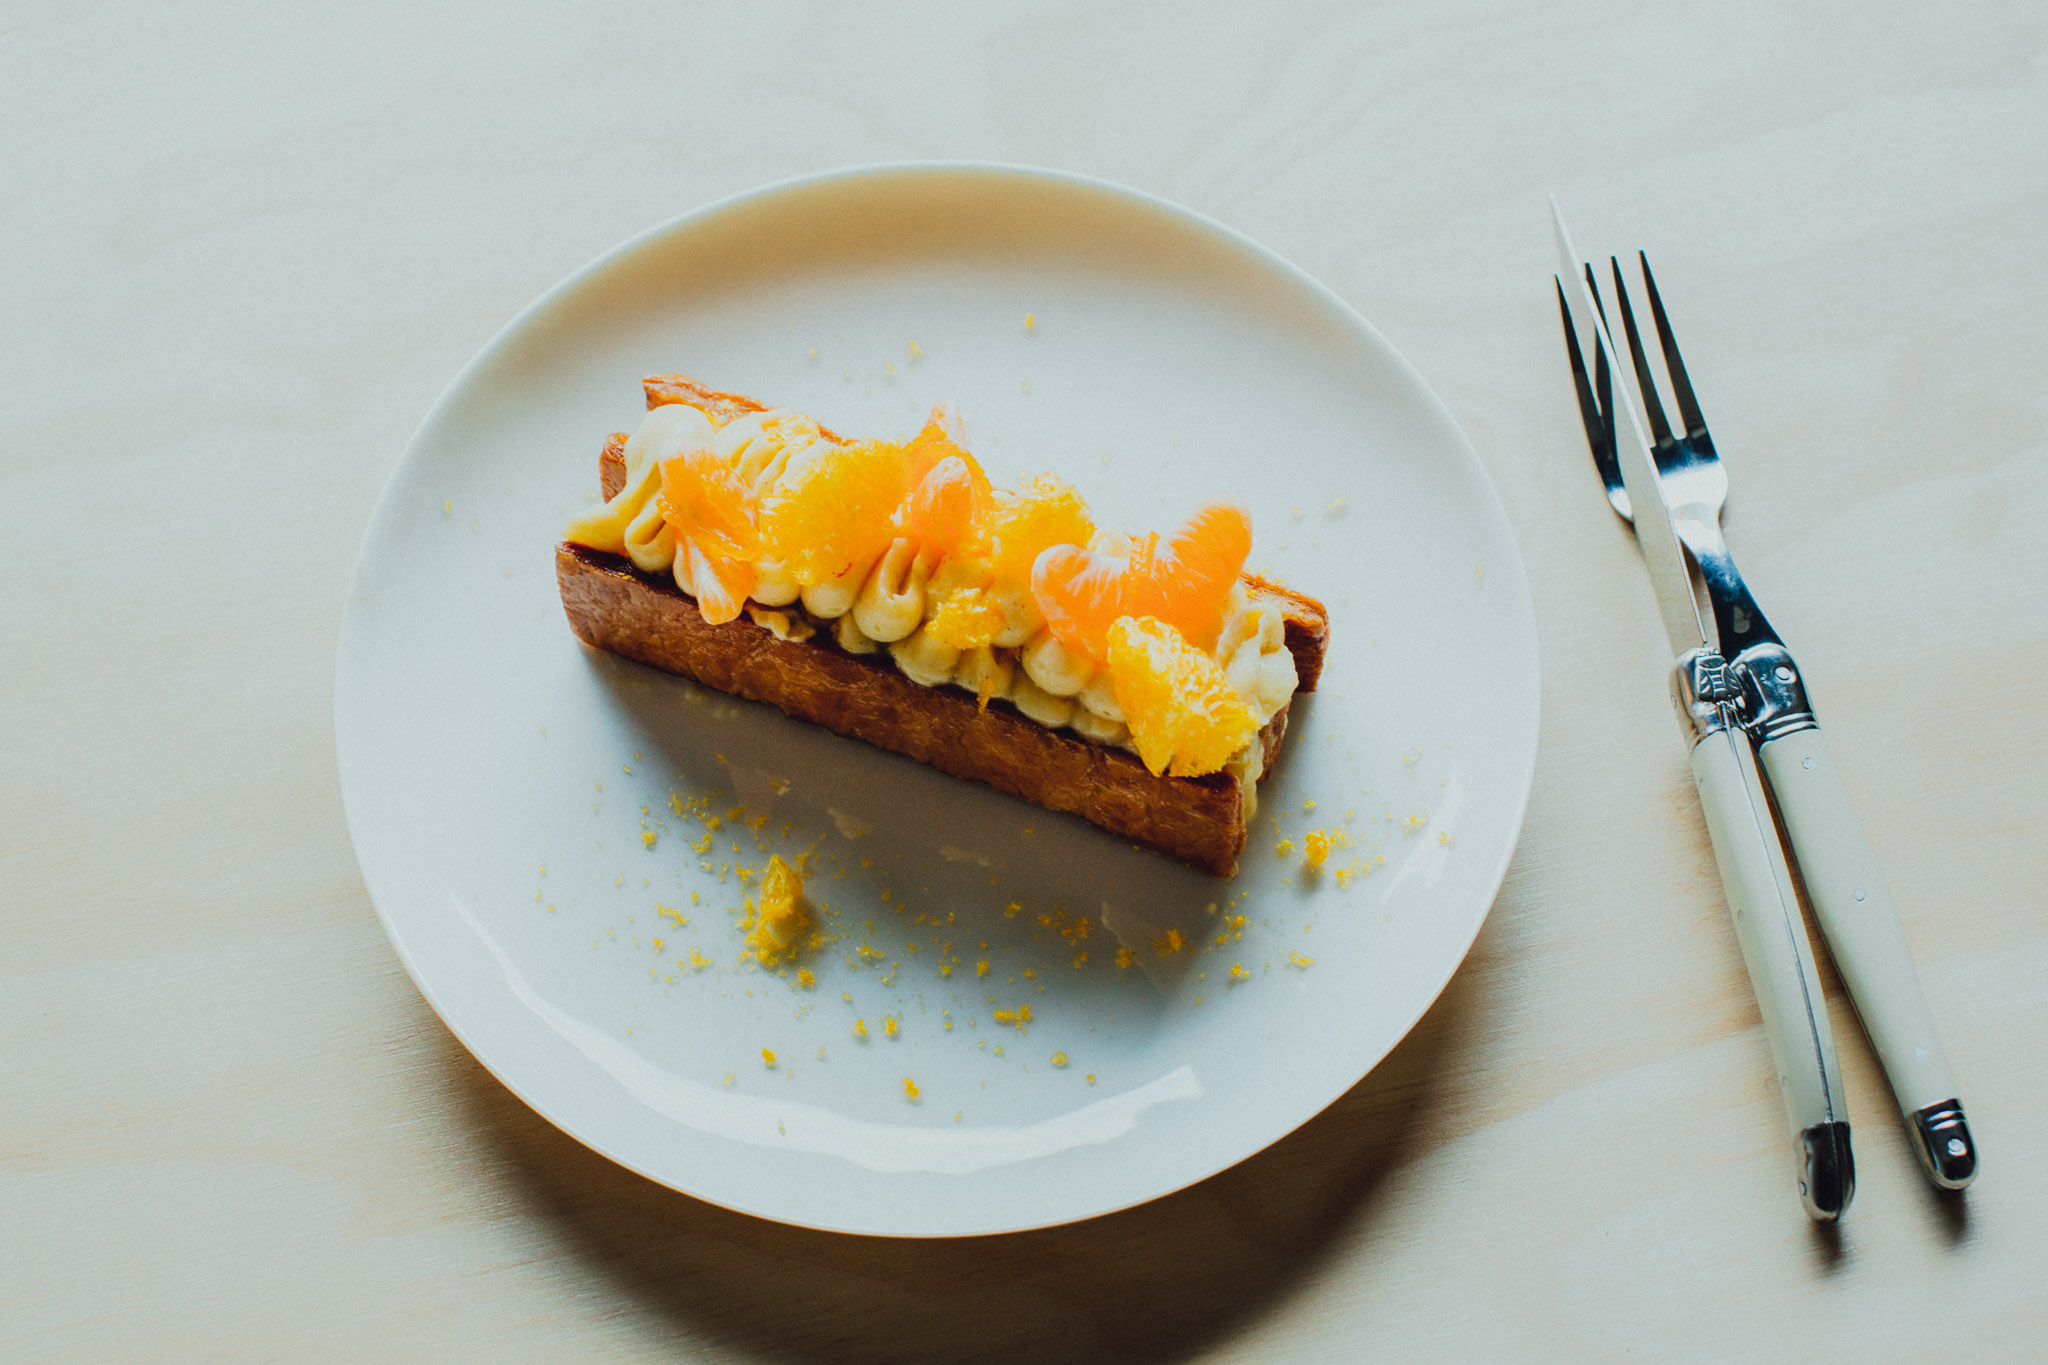 chotto-melbourne-food-photography-mikan-mille-feuille-seasonal